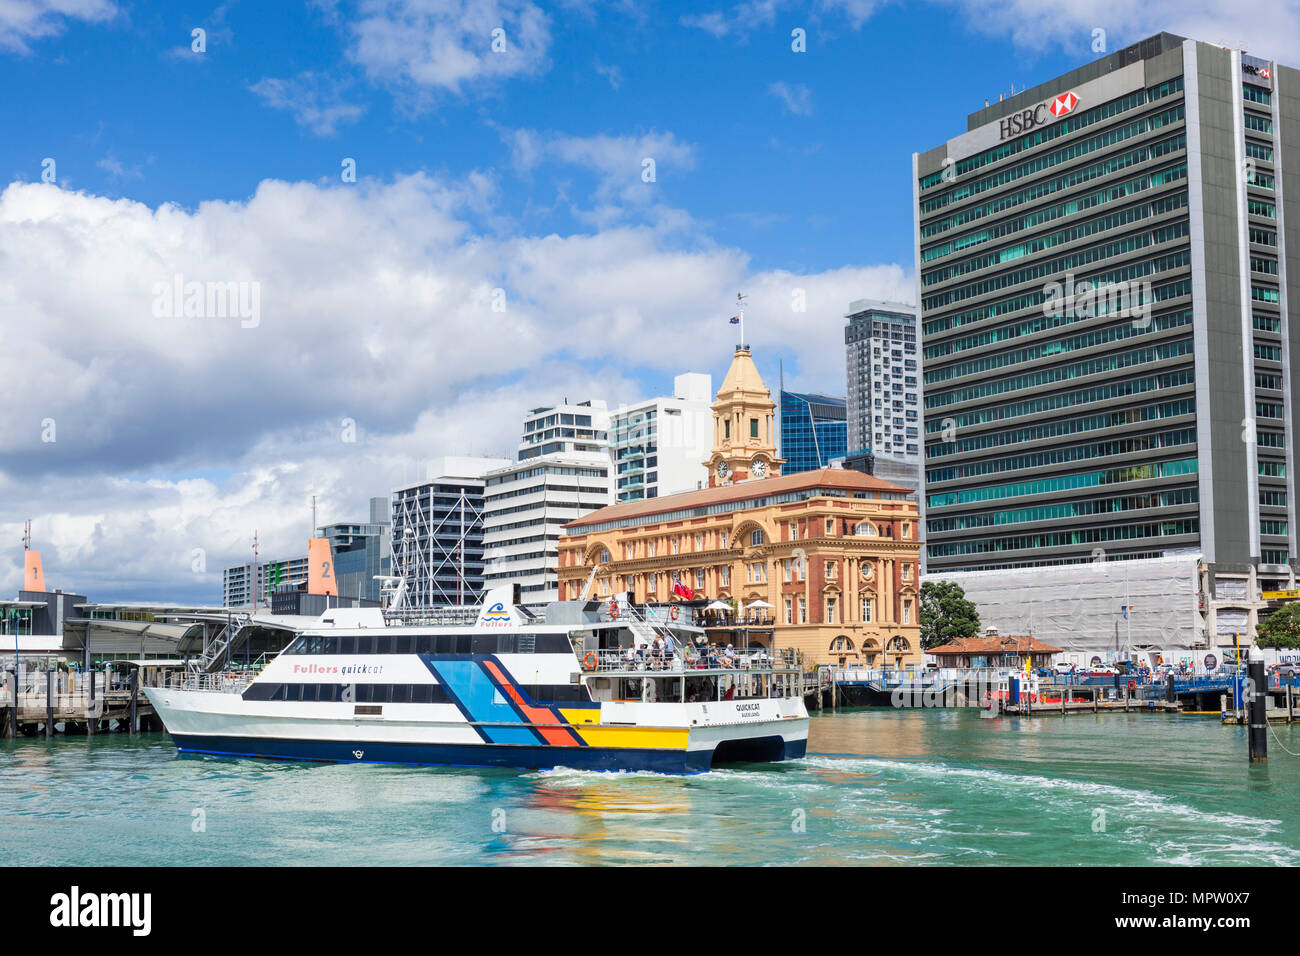 new zealand auckland new zealand north island the Ferry building Quay street Auckland waterfront with arriving ferry new zealand north island - Stock Image